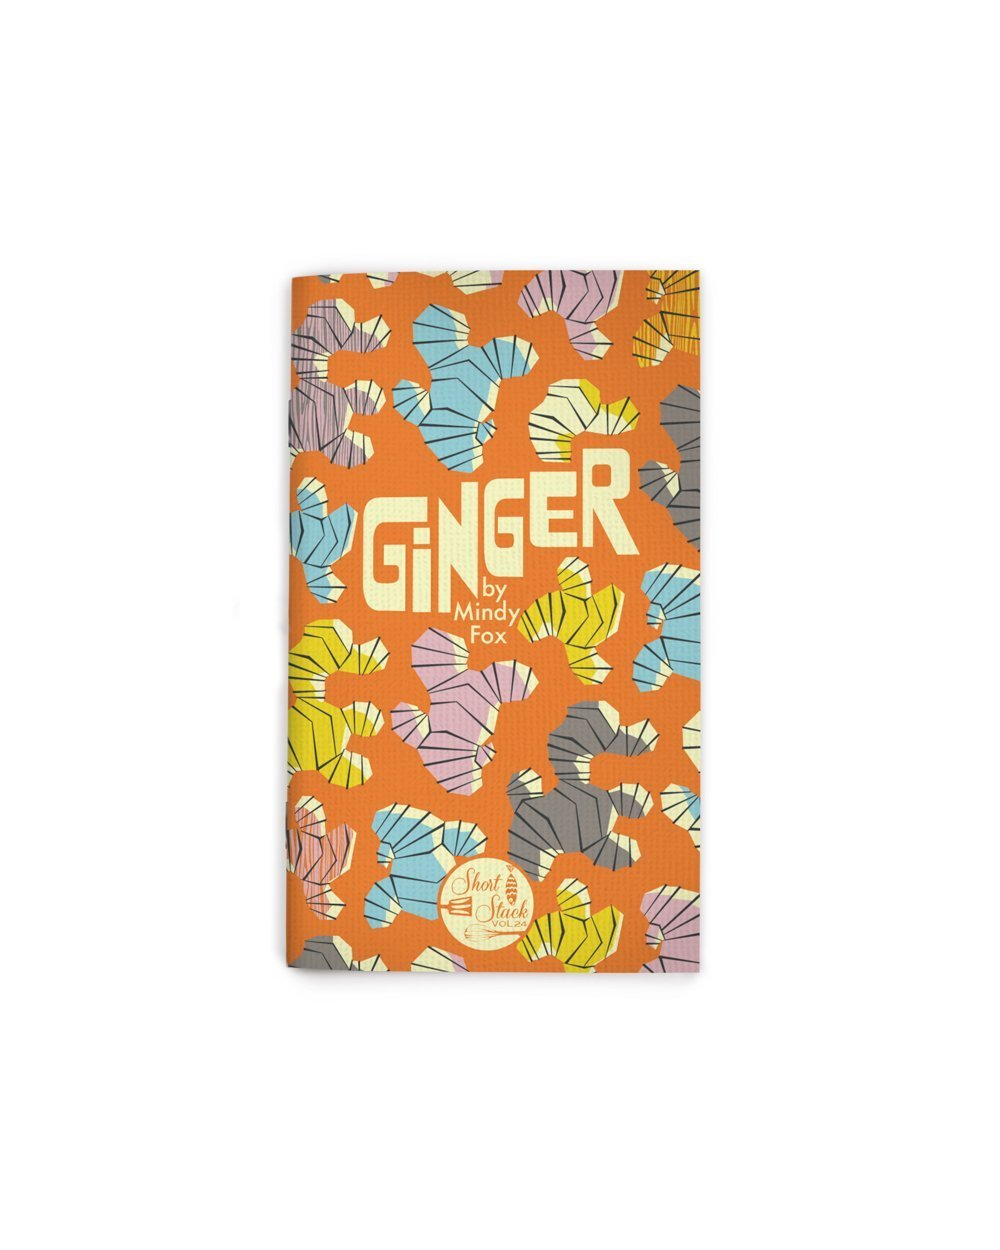 Vol 24: Ginger (By Mindy Fox)